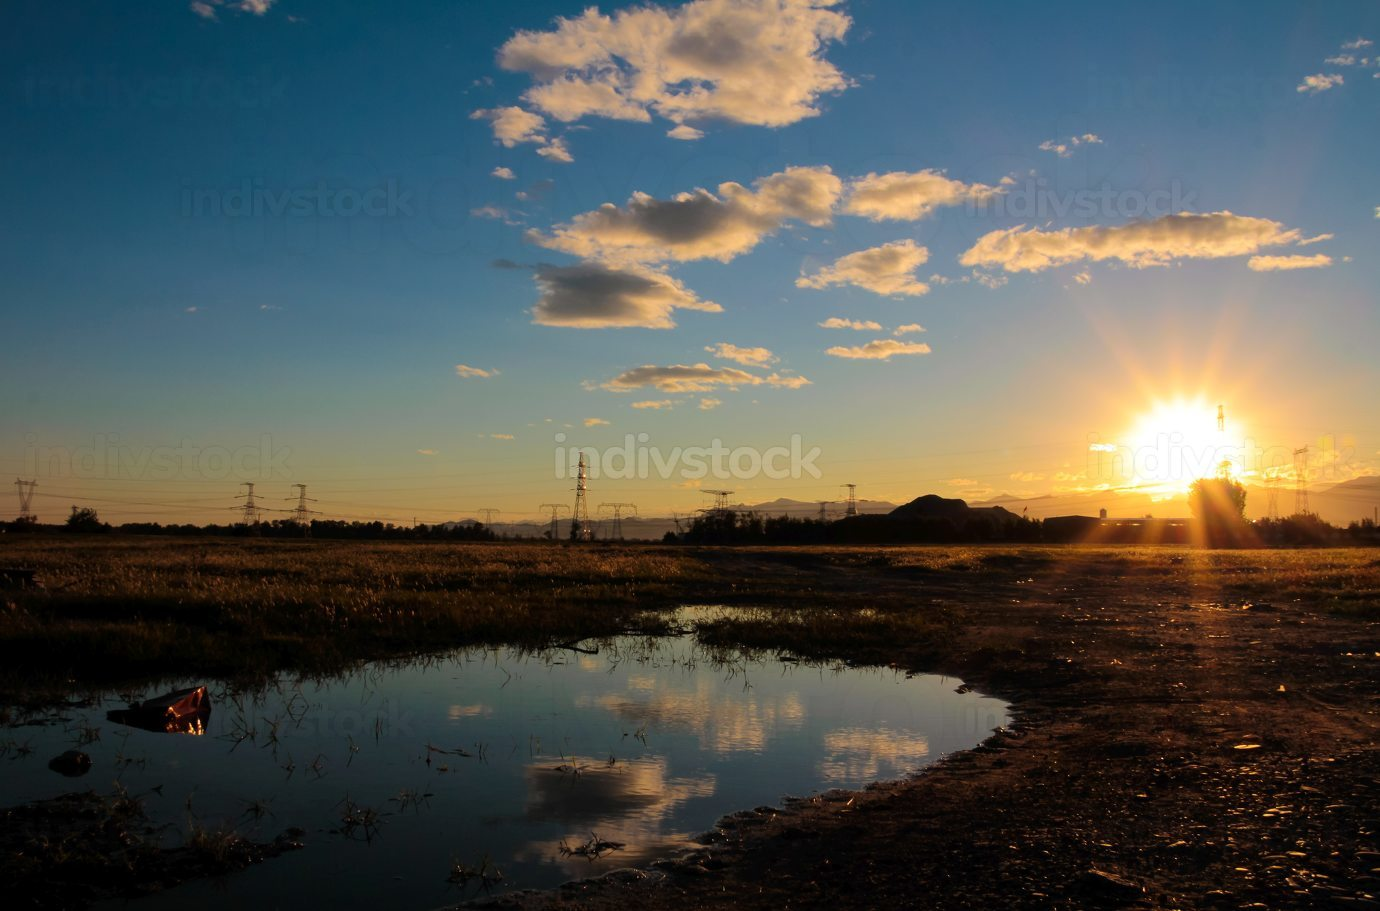 sunset at country side, relax life concept